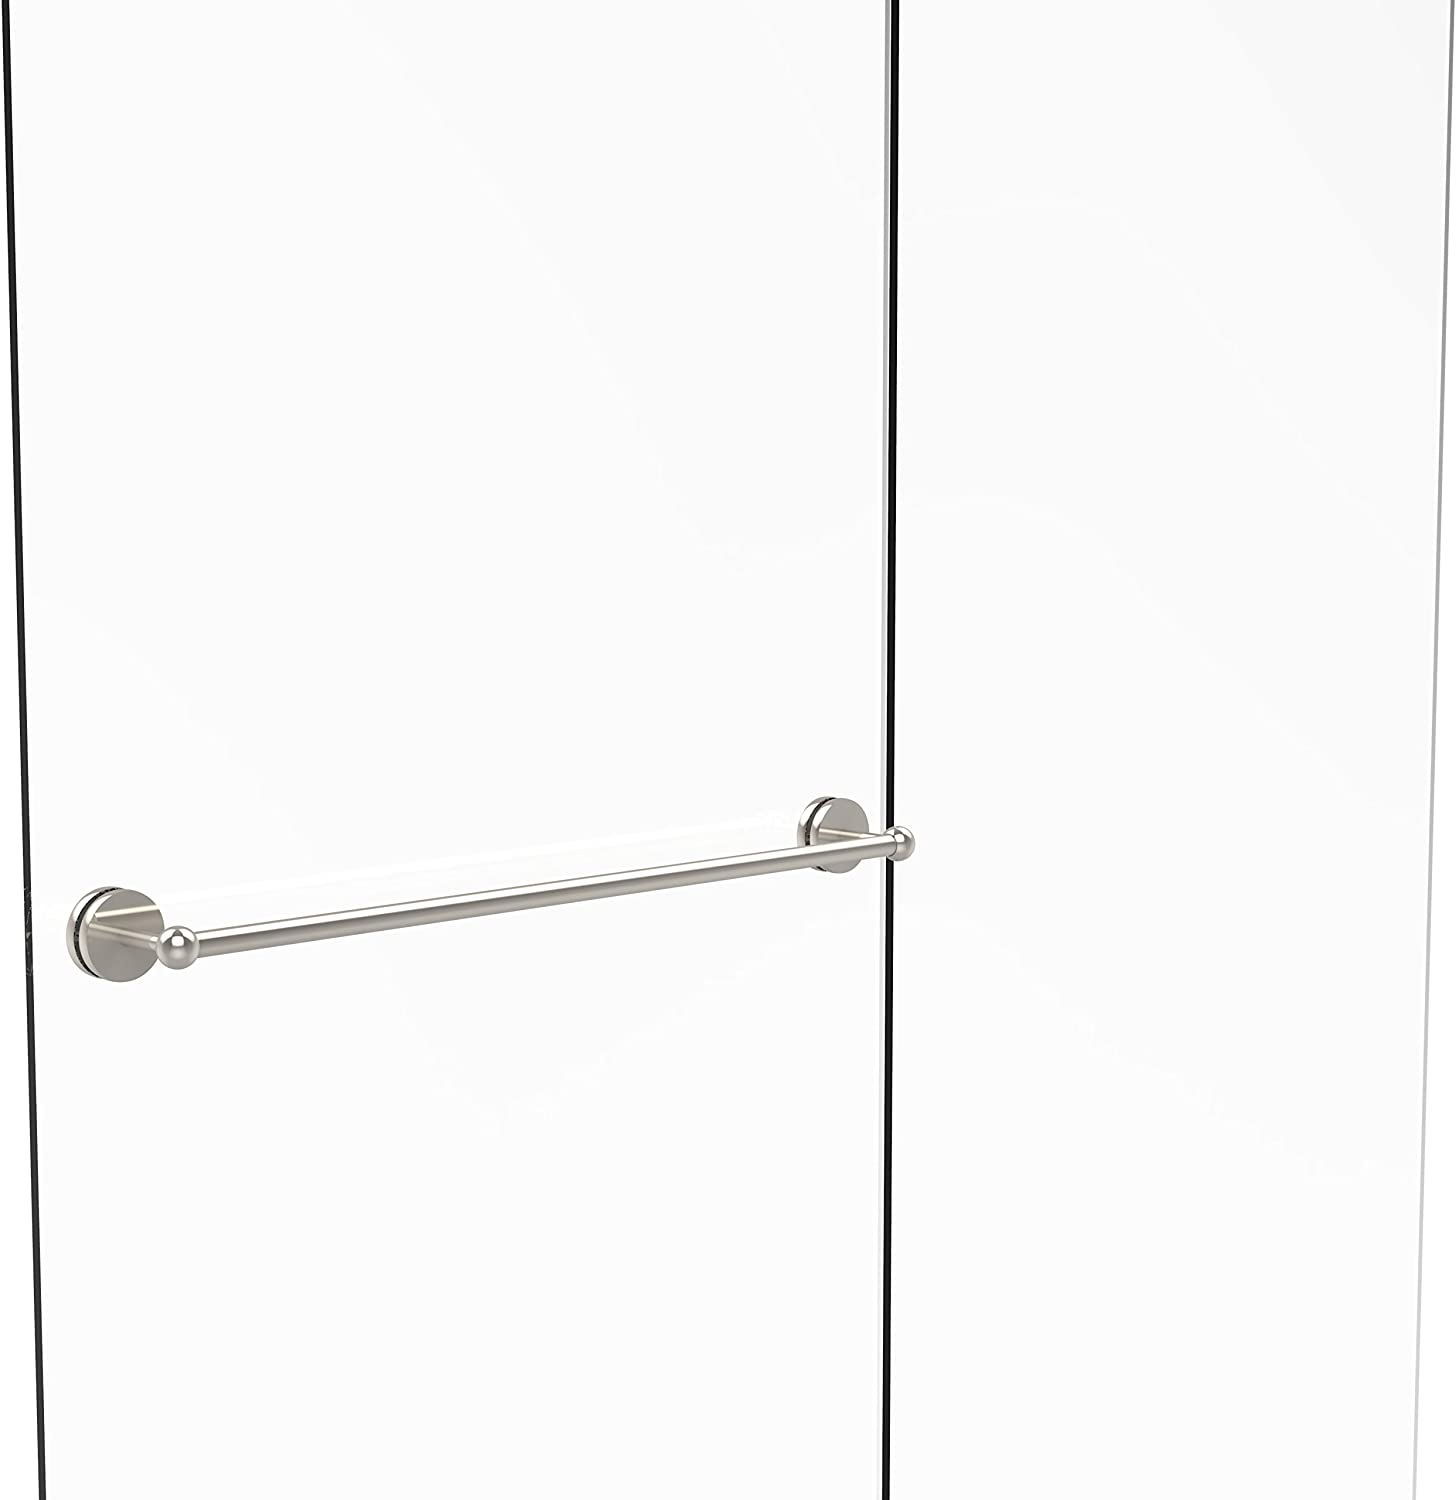 Allied Brass Prestige Skyline Collection 30 Inch Shower Door Towel Bar, P1000-41-SM-30-PNI